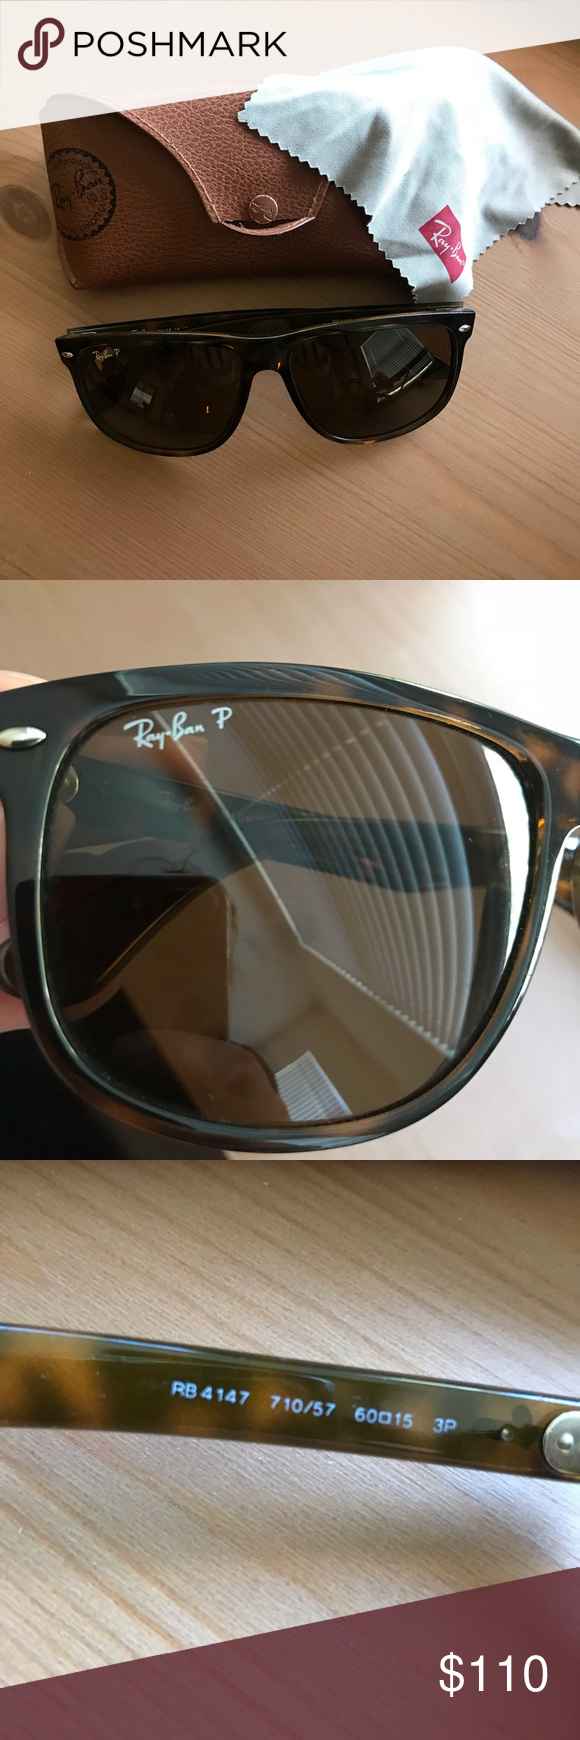 dfa976c489 Oversized Wayfarer Ray Bans -Polarized Hardly ever worn oversized polarized  Sunglasses. Comes with cleaning